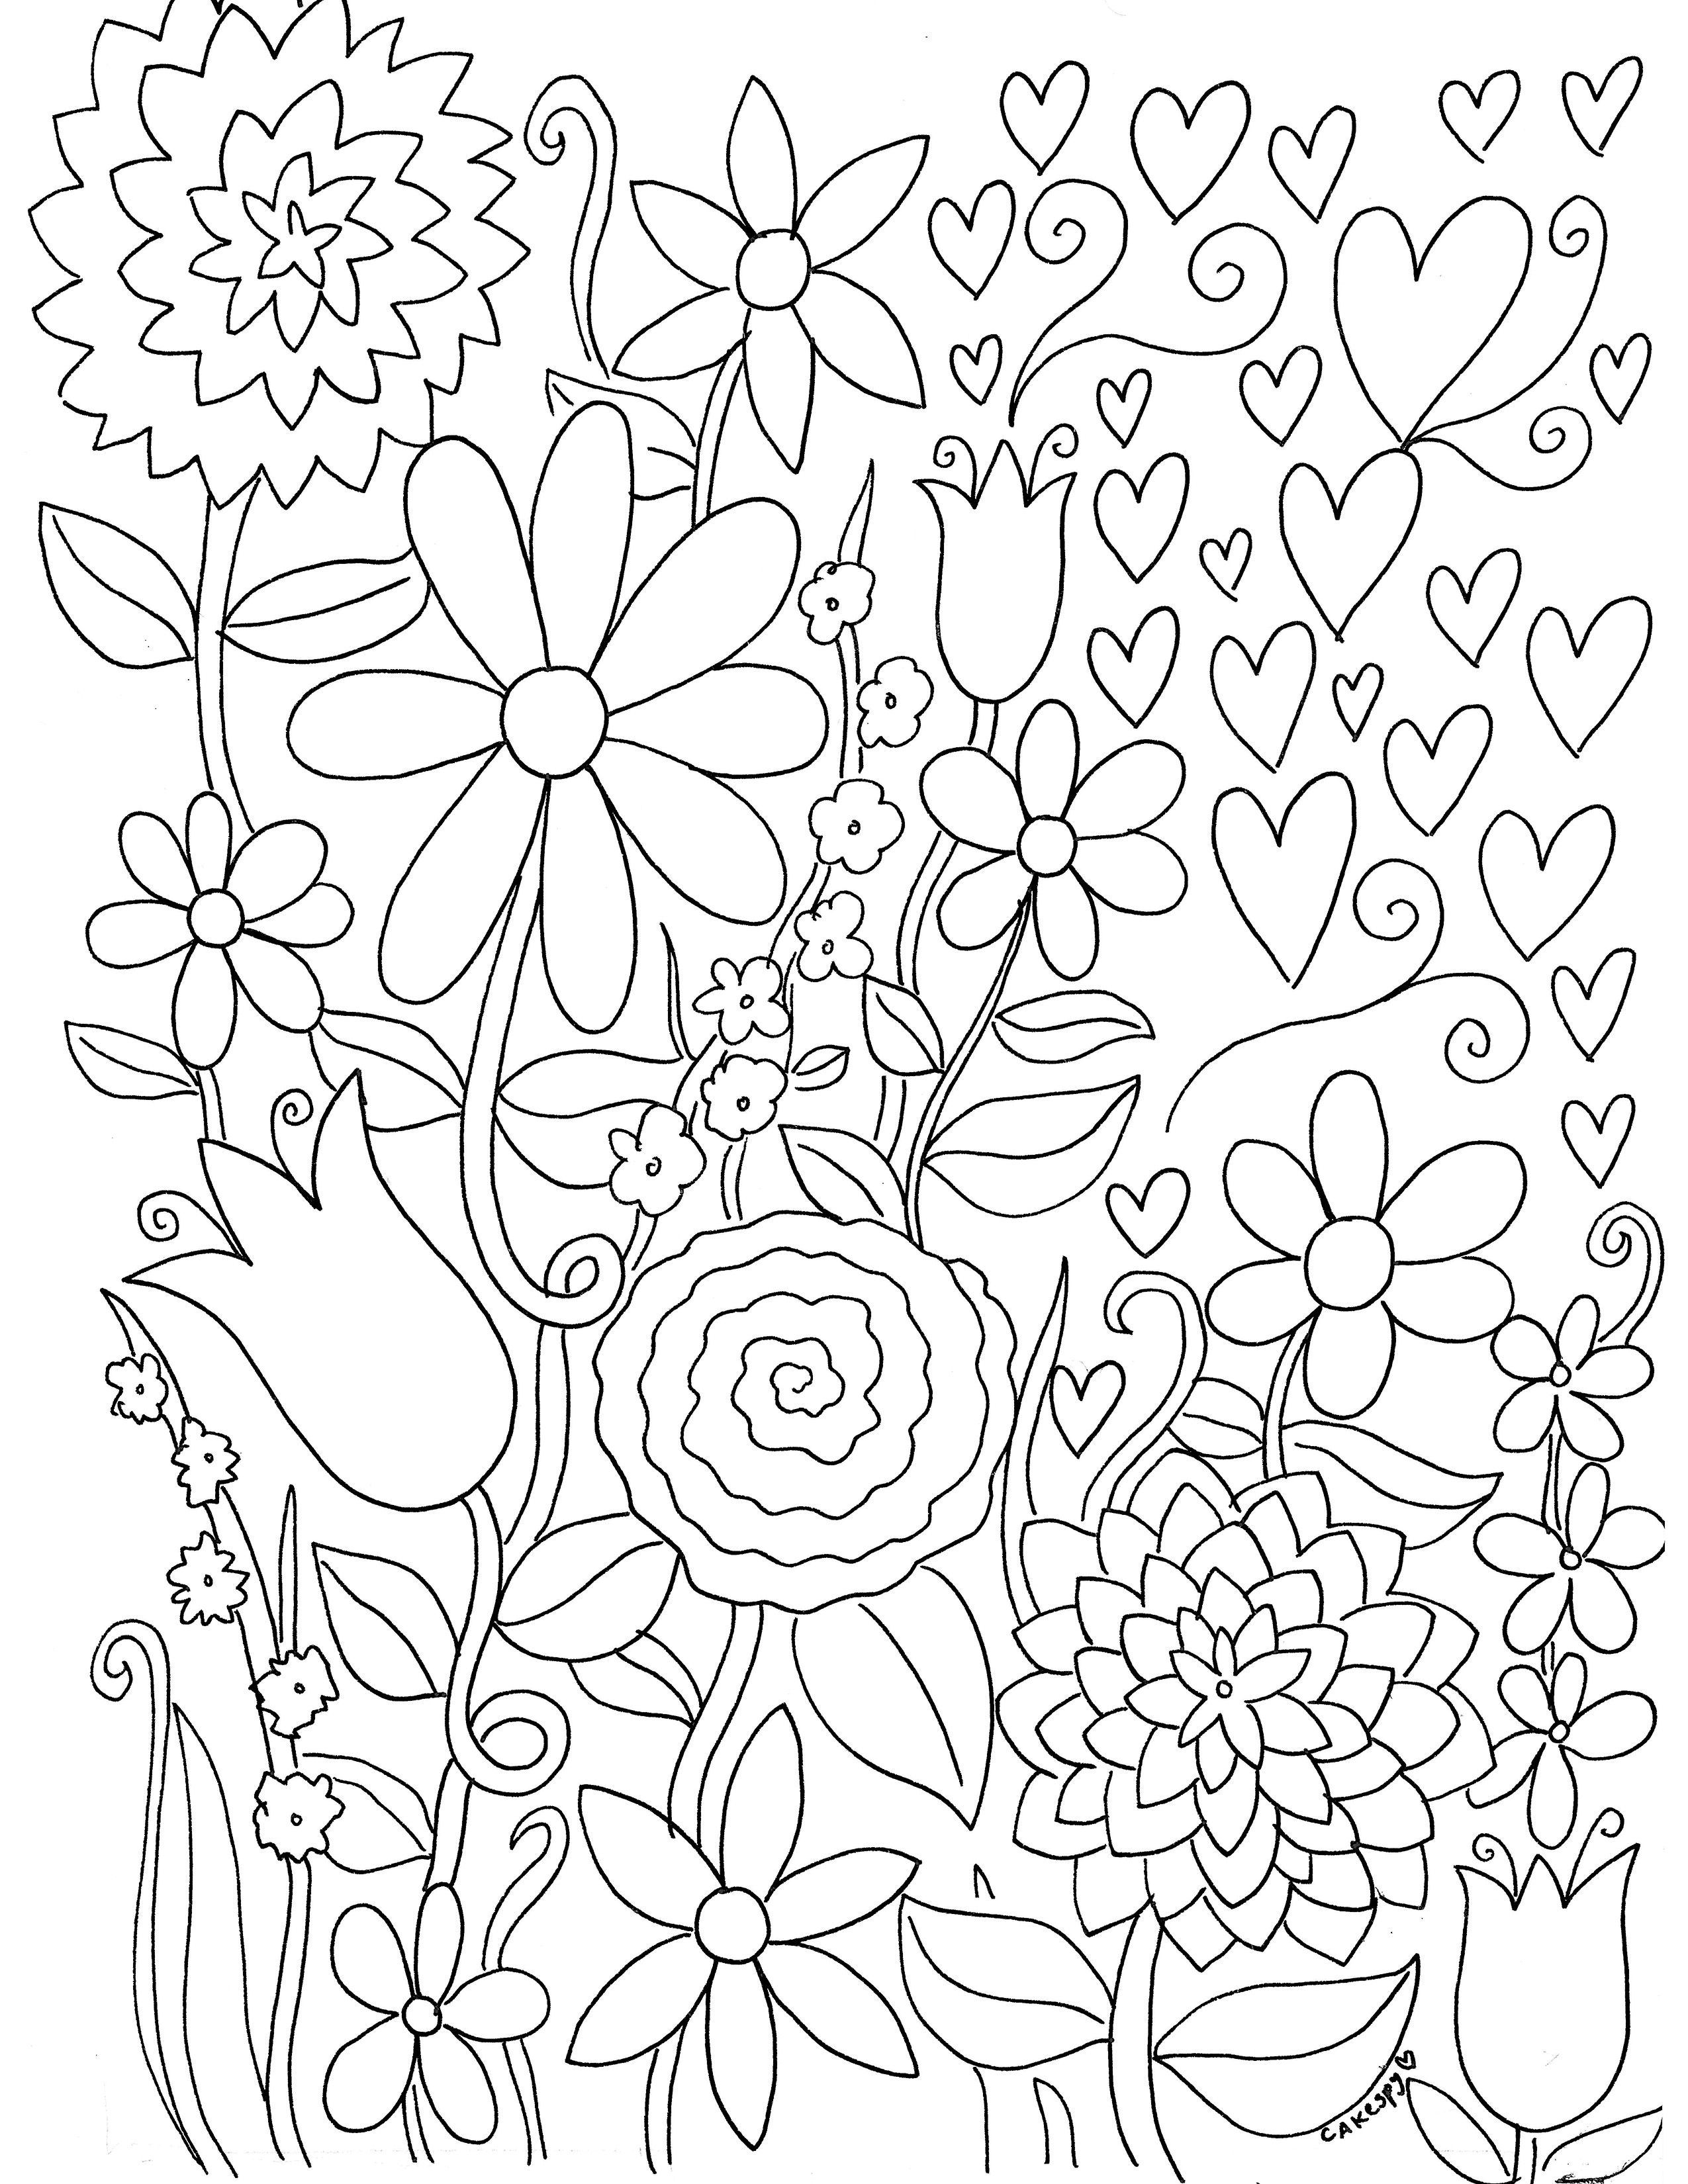 FREE Download Try A New Technique With Craftsys Paint By Numbers For Adults